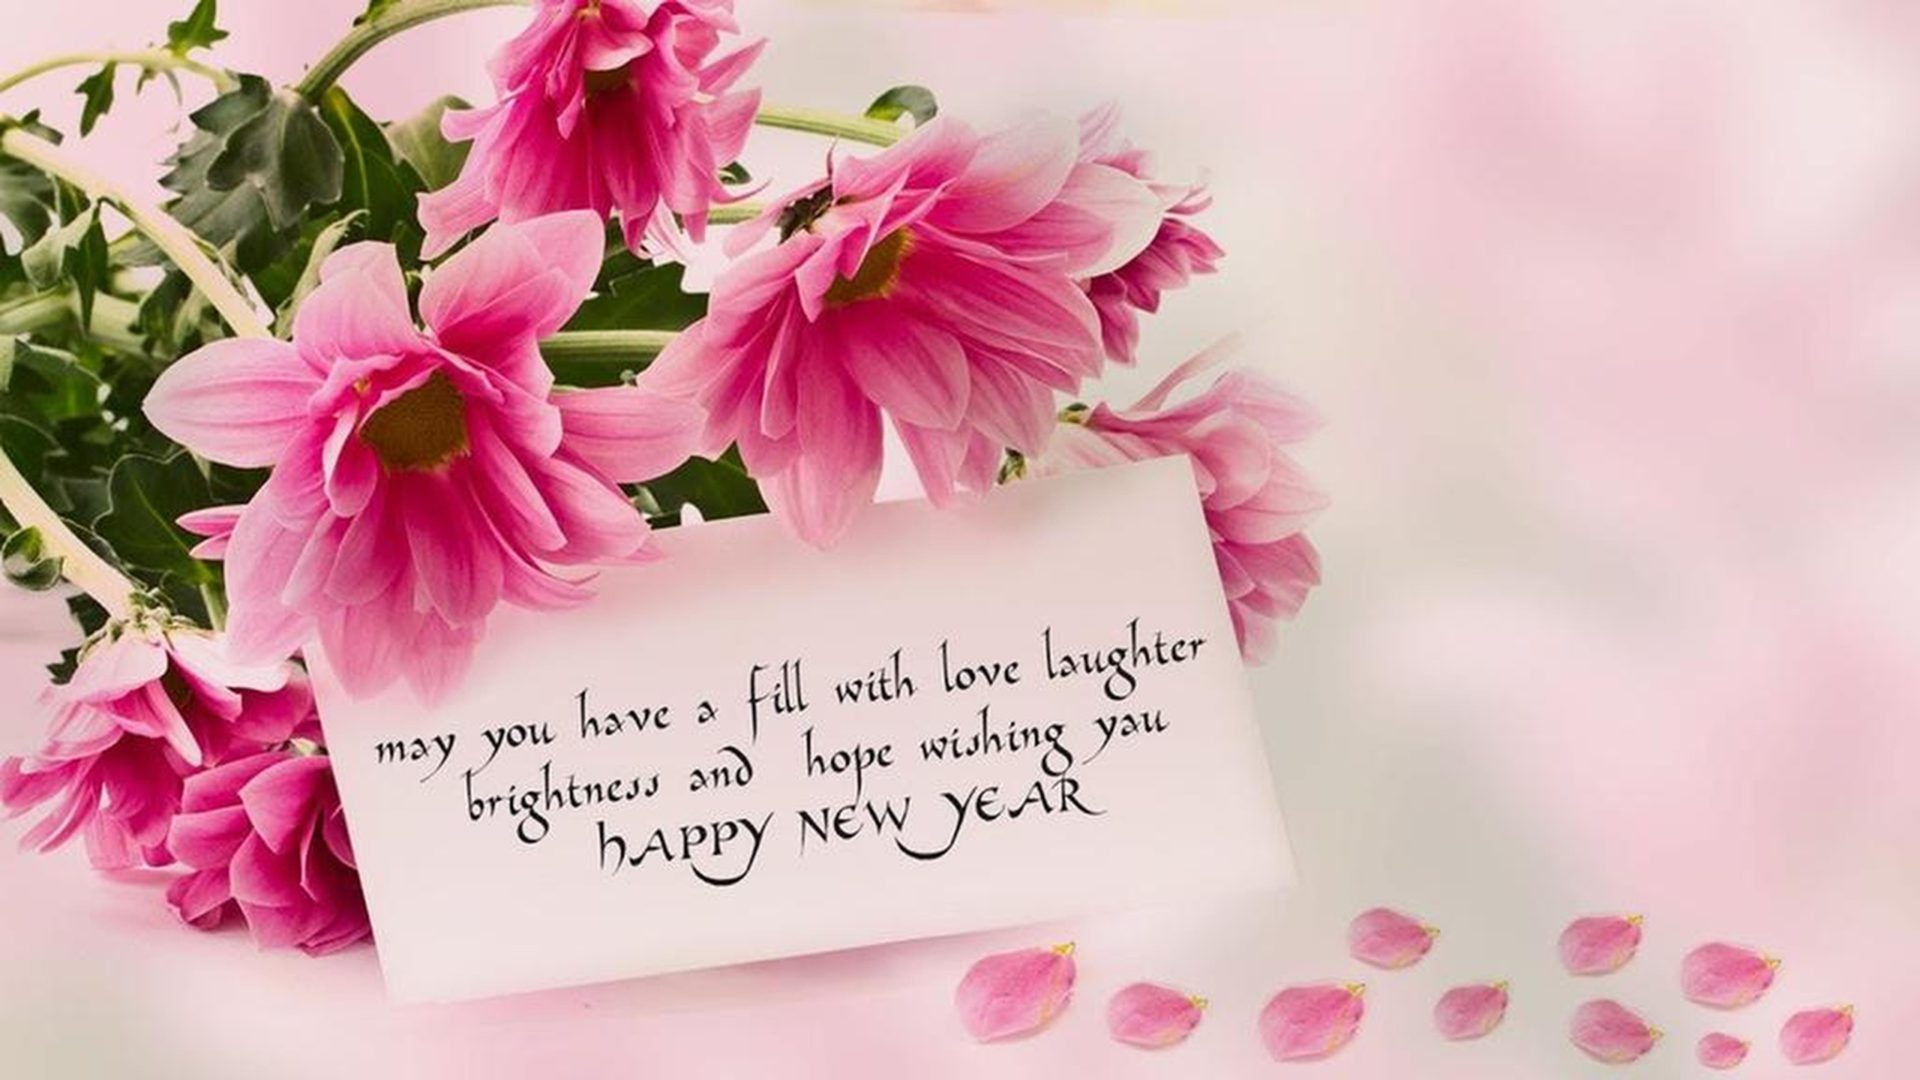 Happy New Year 2020 Rose Flowers Love Wallpapers Hd 5120x2880 1920x1080